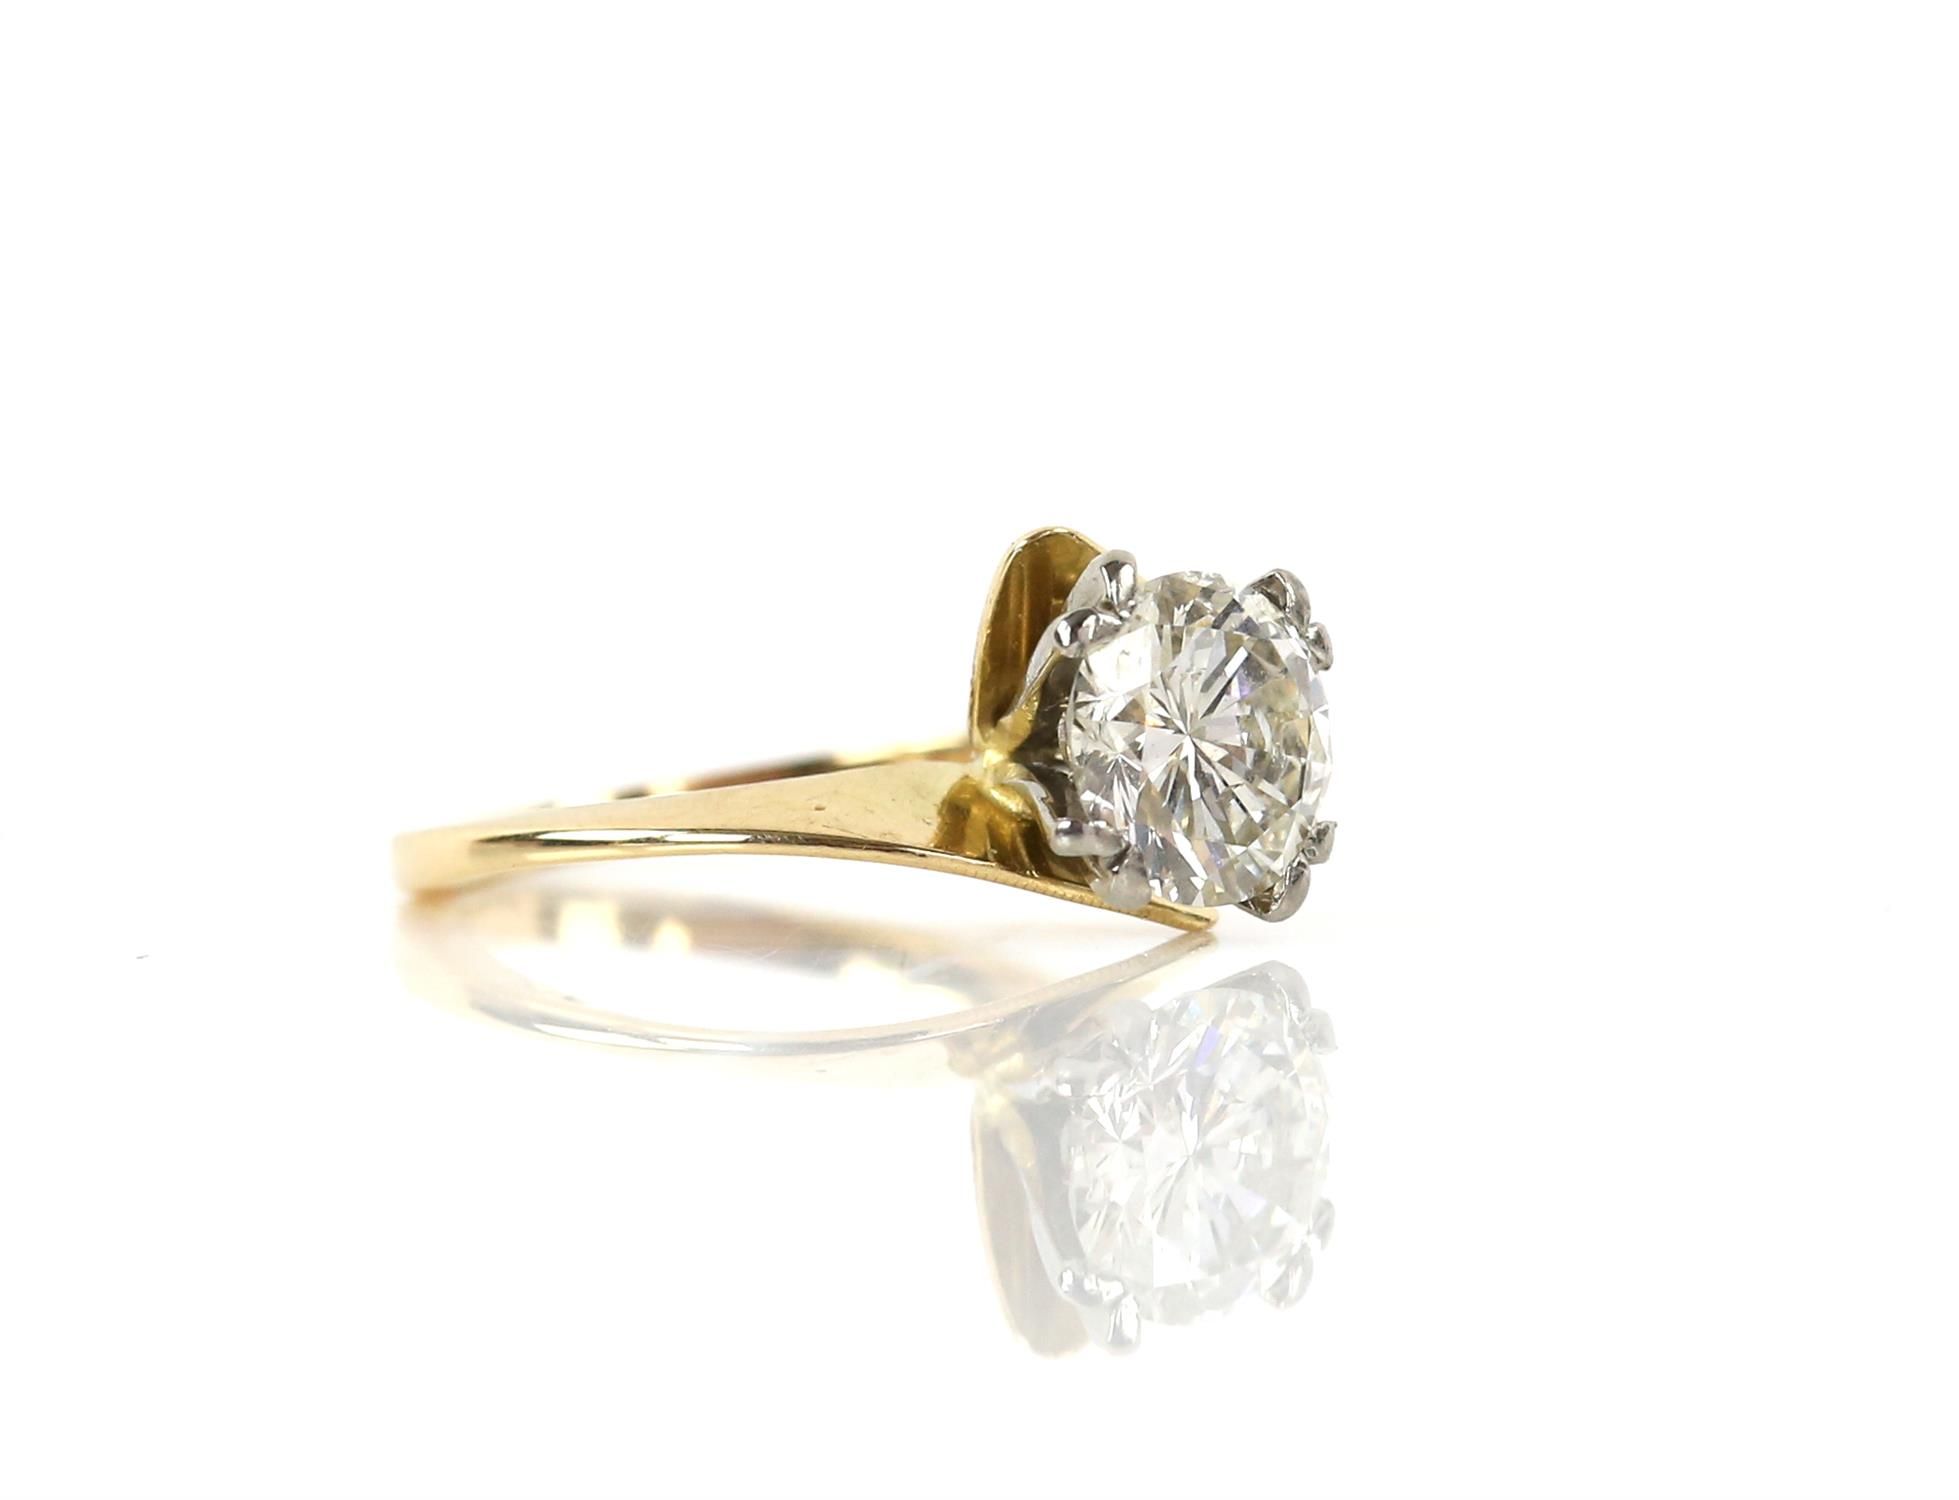 Single stone diamond ring, round brilliant cut diamond weighing an estimated 2.02 carats, - Image 4 of 6